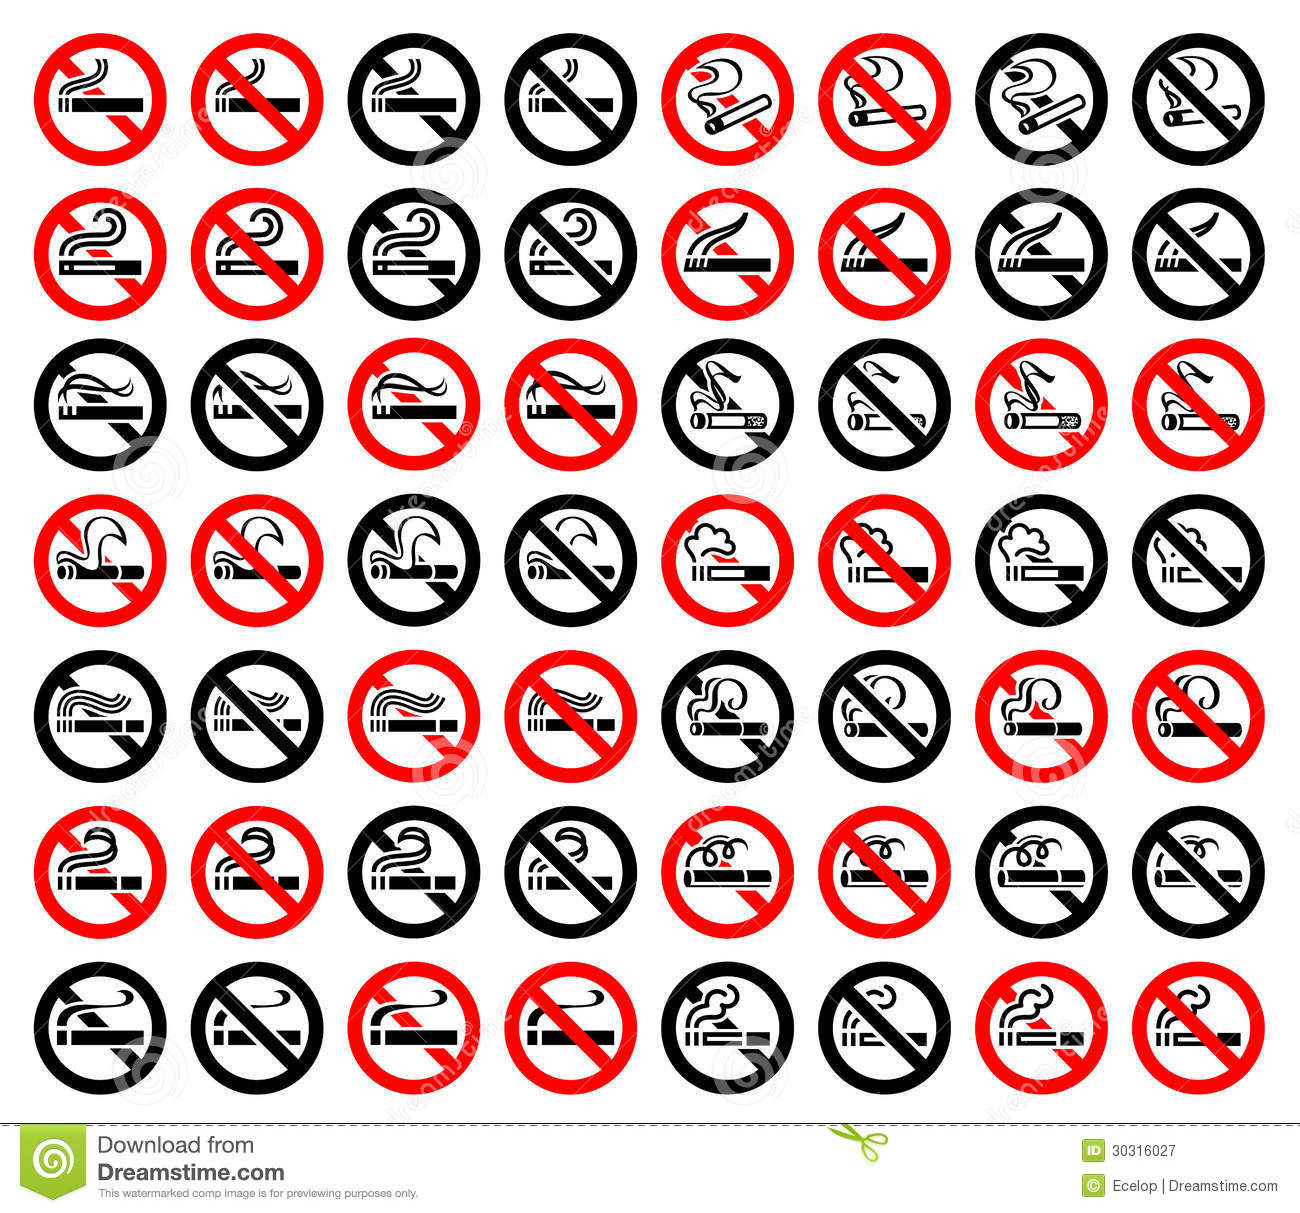 14 Symbols Of Cigarettes 56 Round Signs Stock Vector Illustration